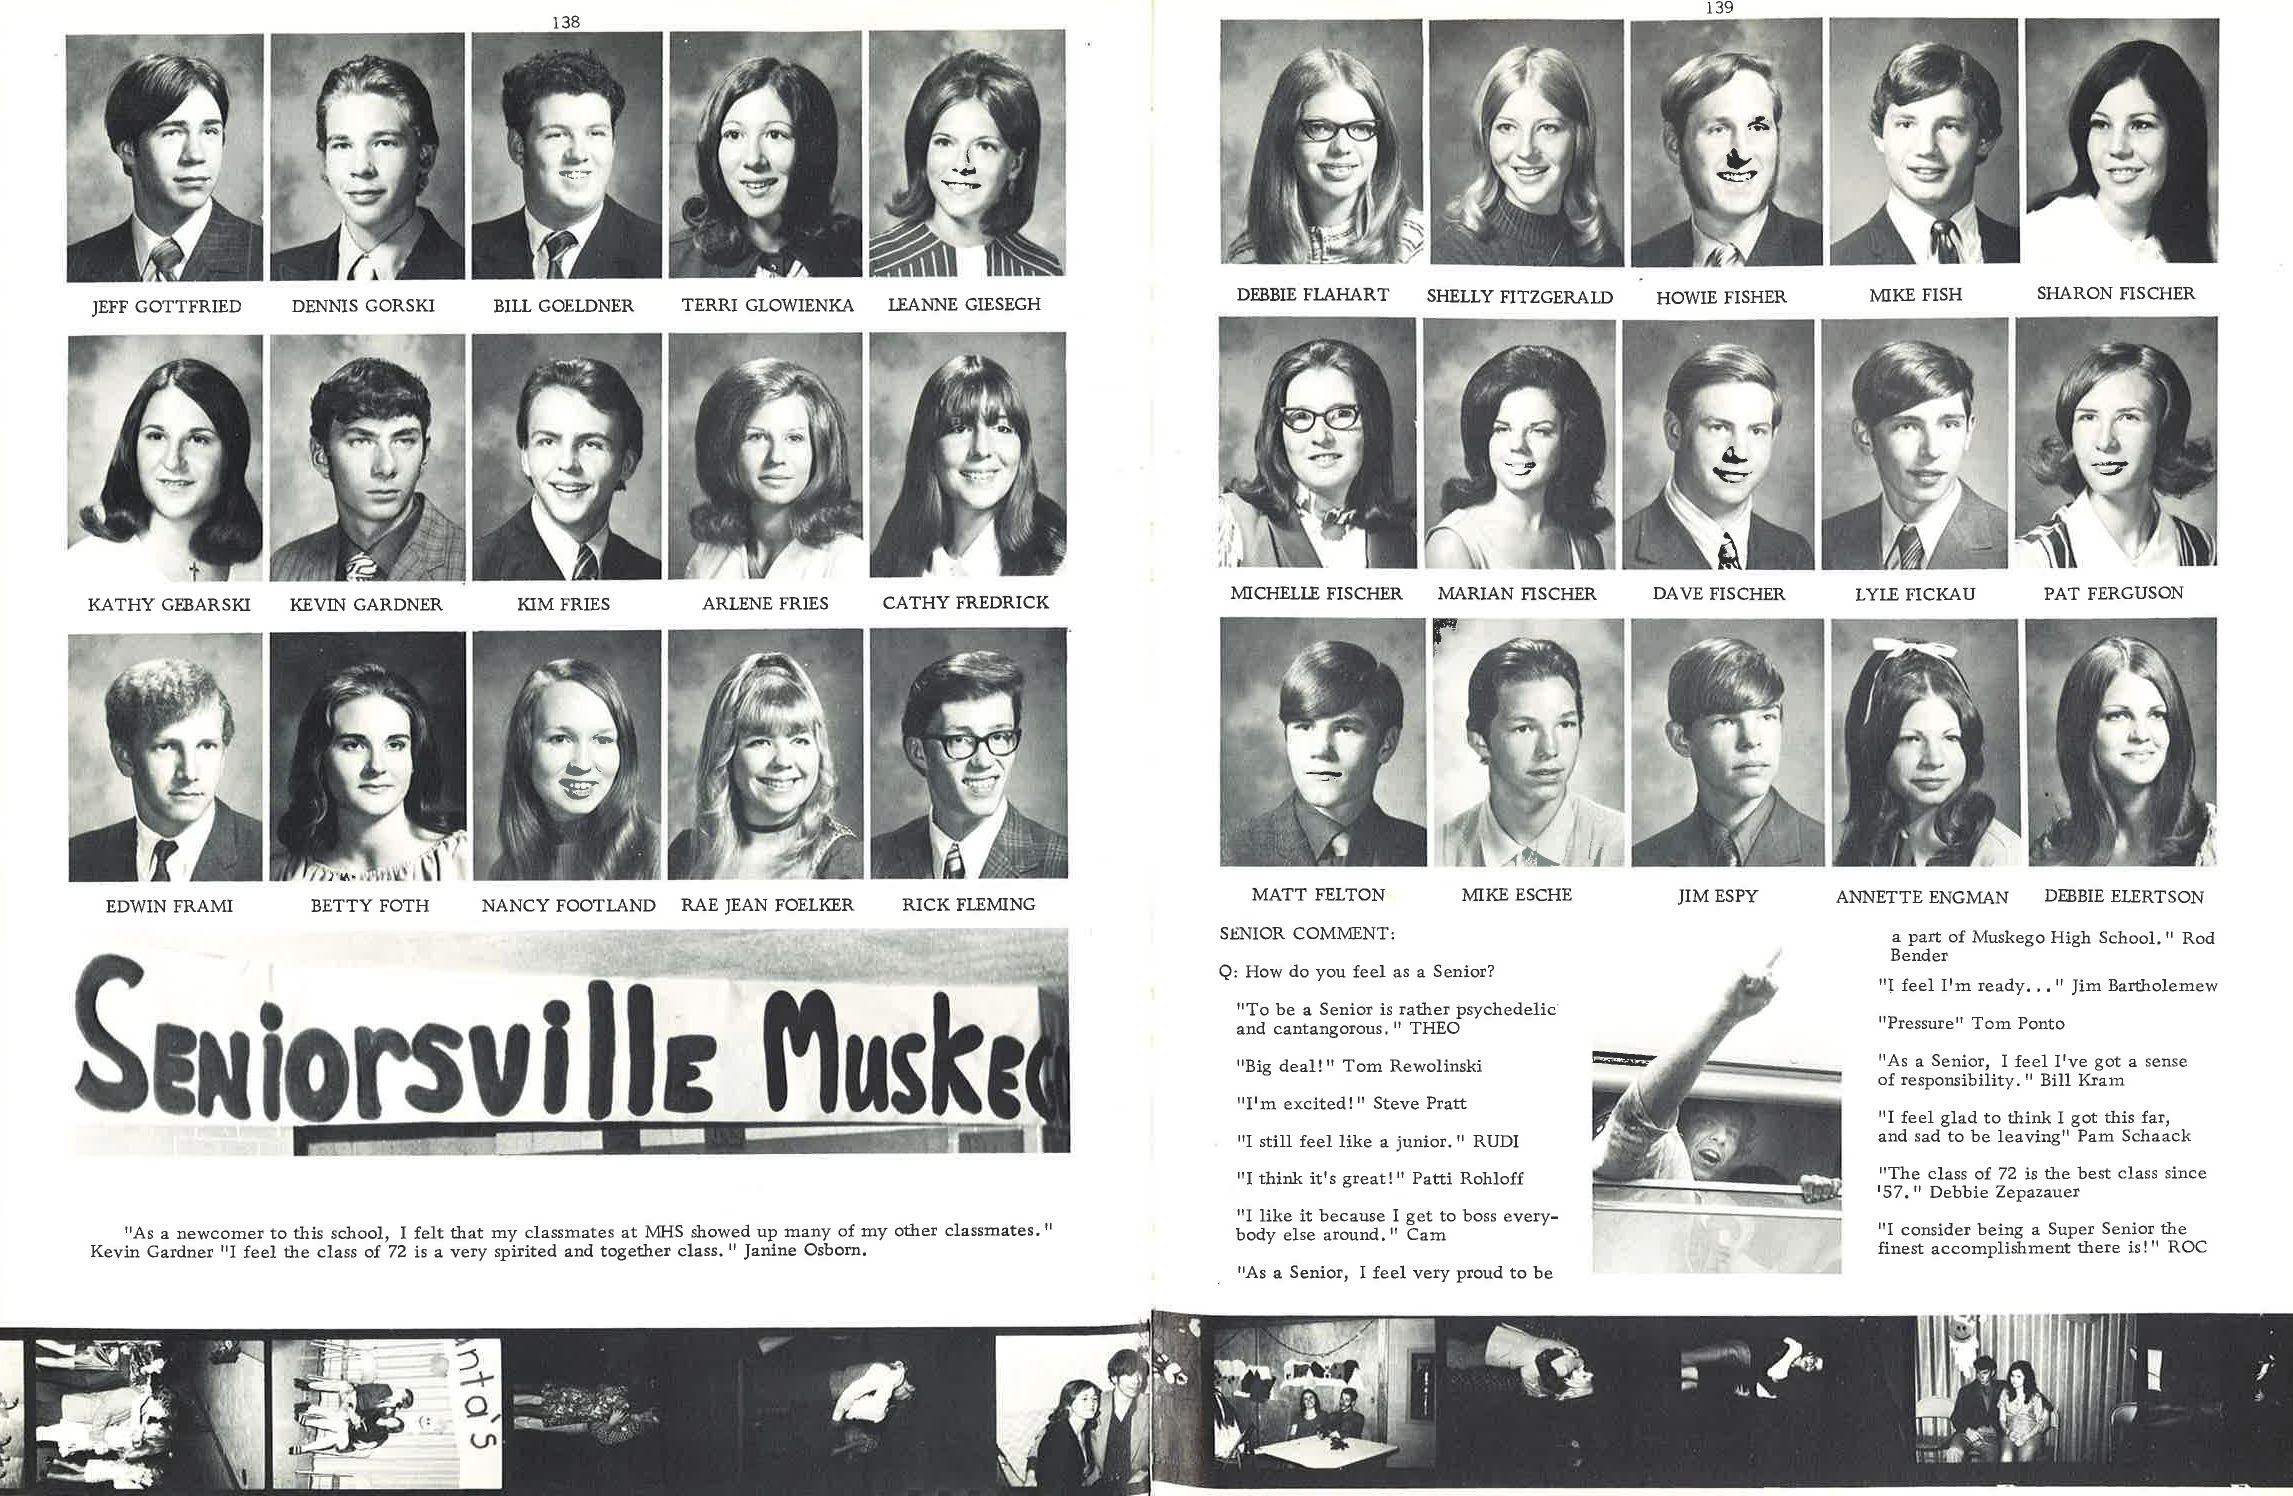 1972_Yearbook_138-139.jpg